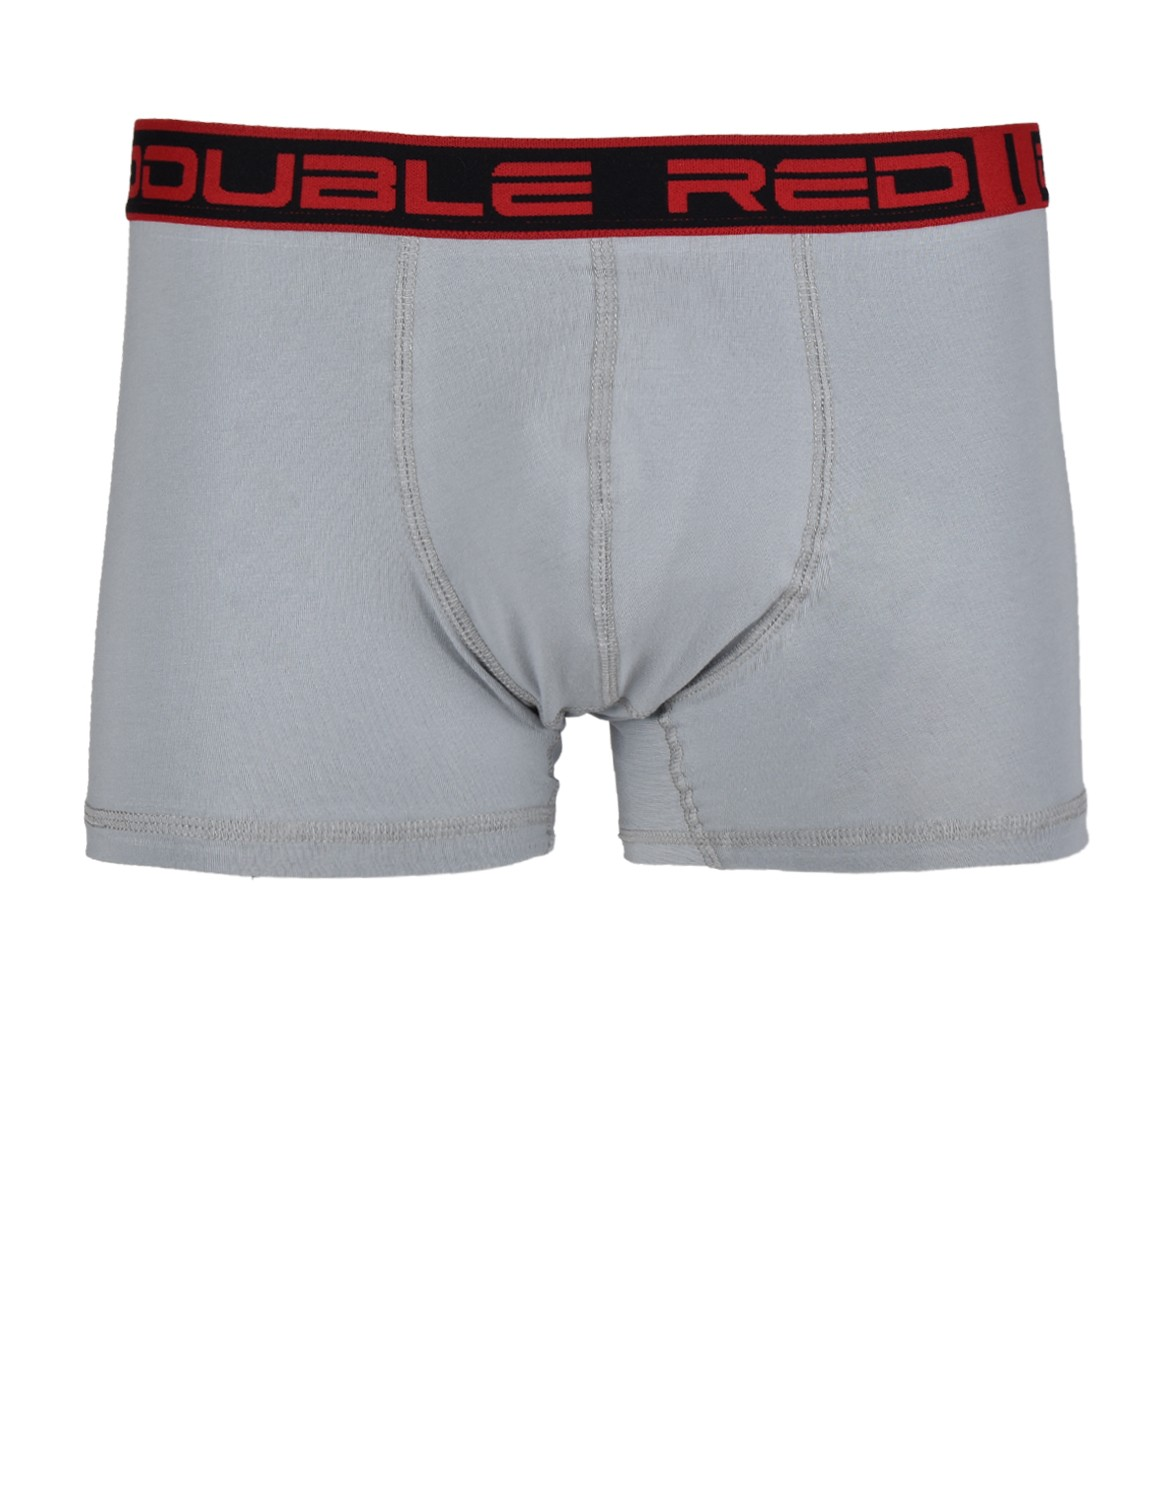 2RED BOXER Grey